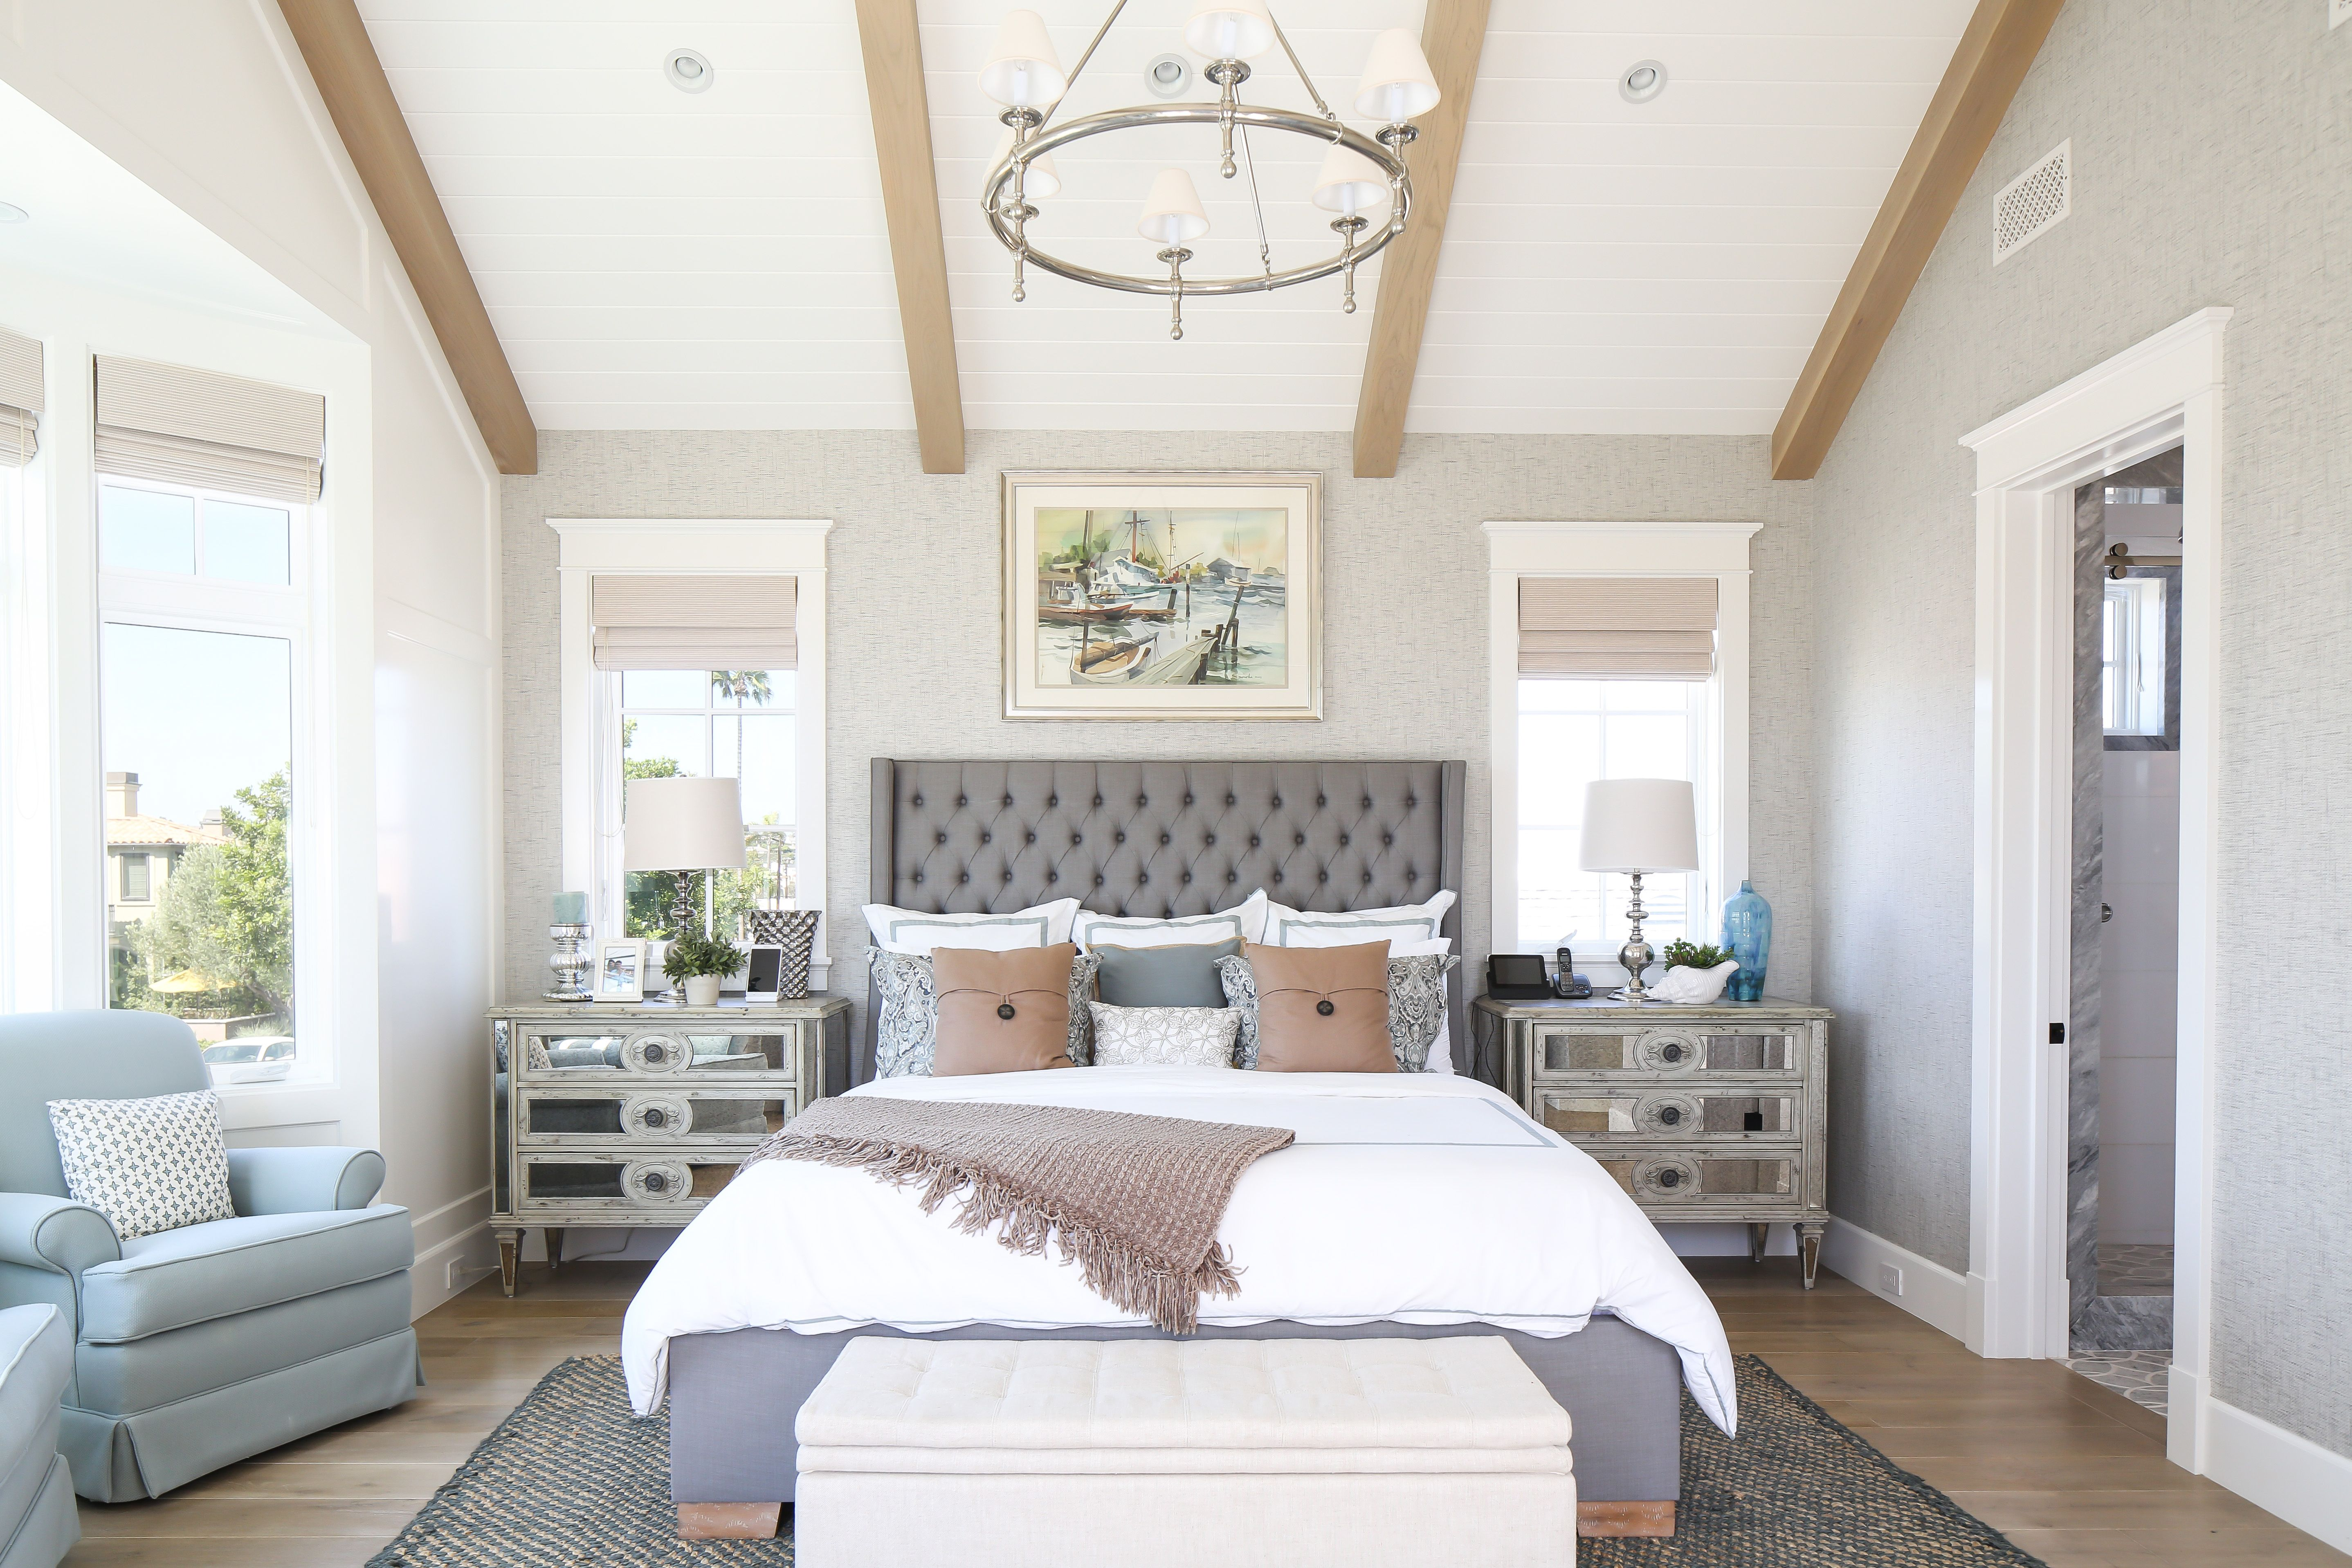 We Love The Exposed Wood Beams And Vaulted Ceilings In